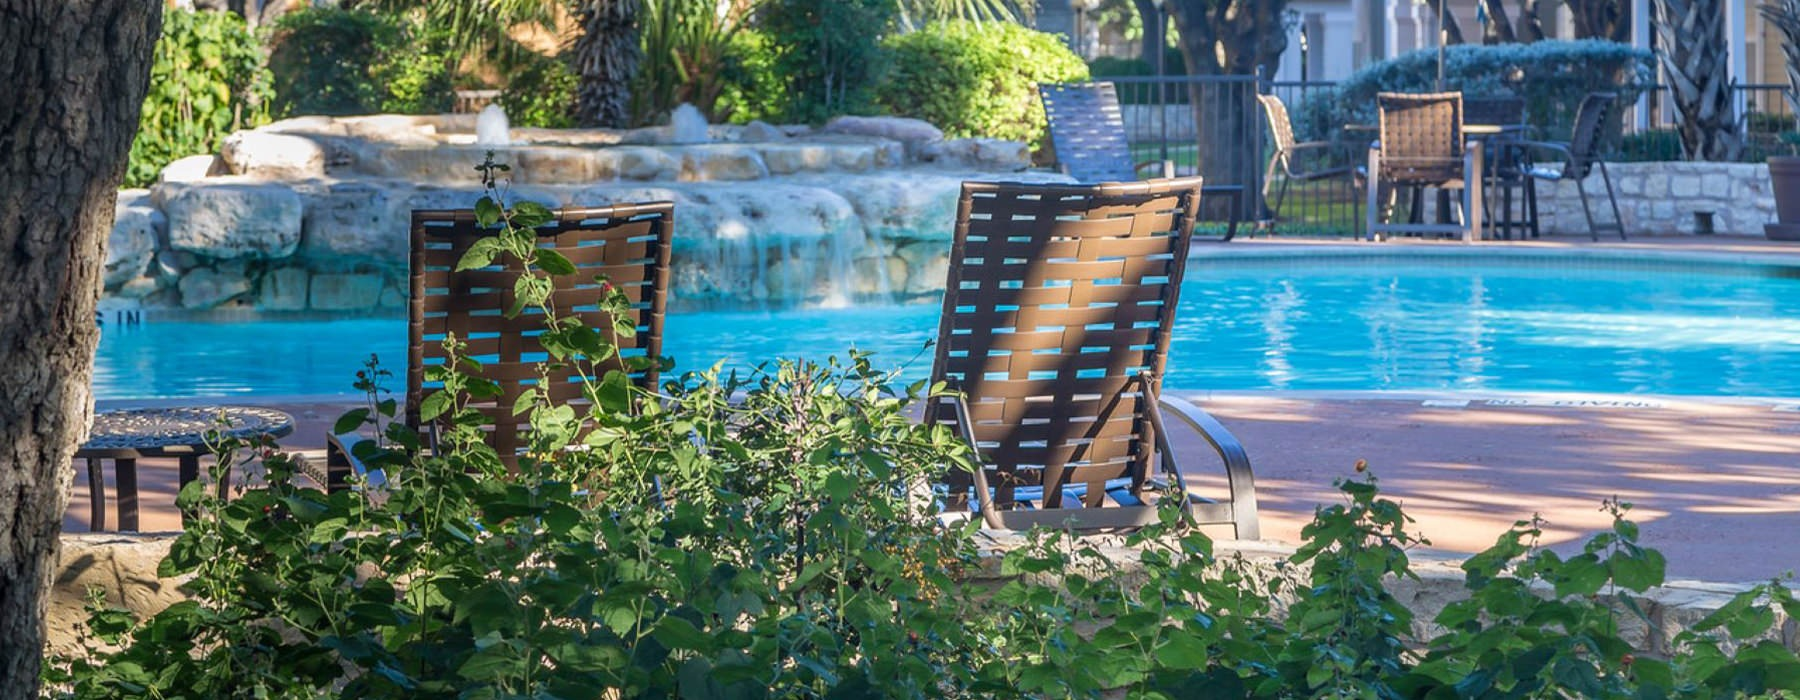 Lounge chairs by a pool with a fountain